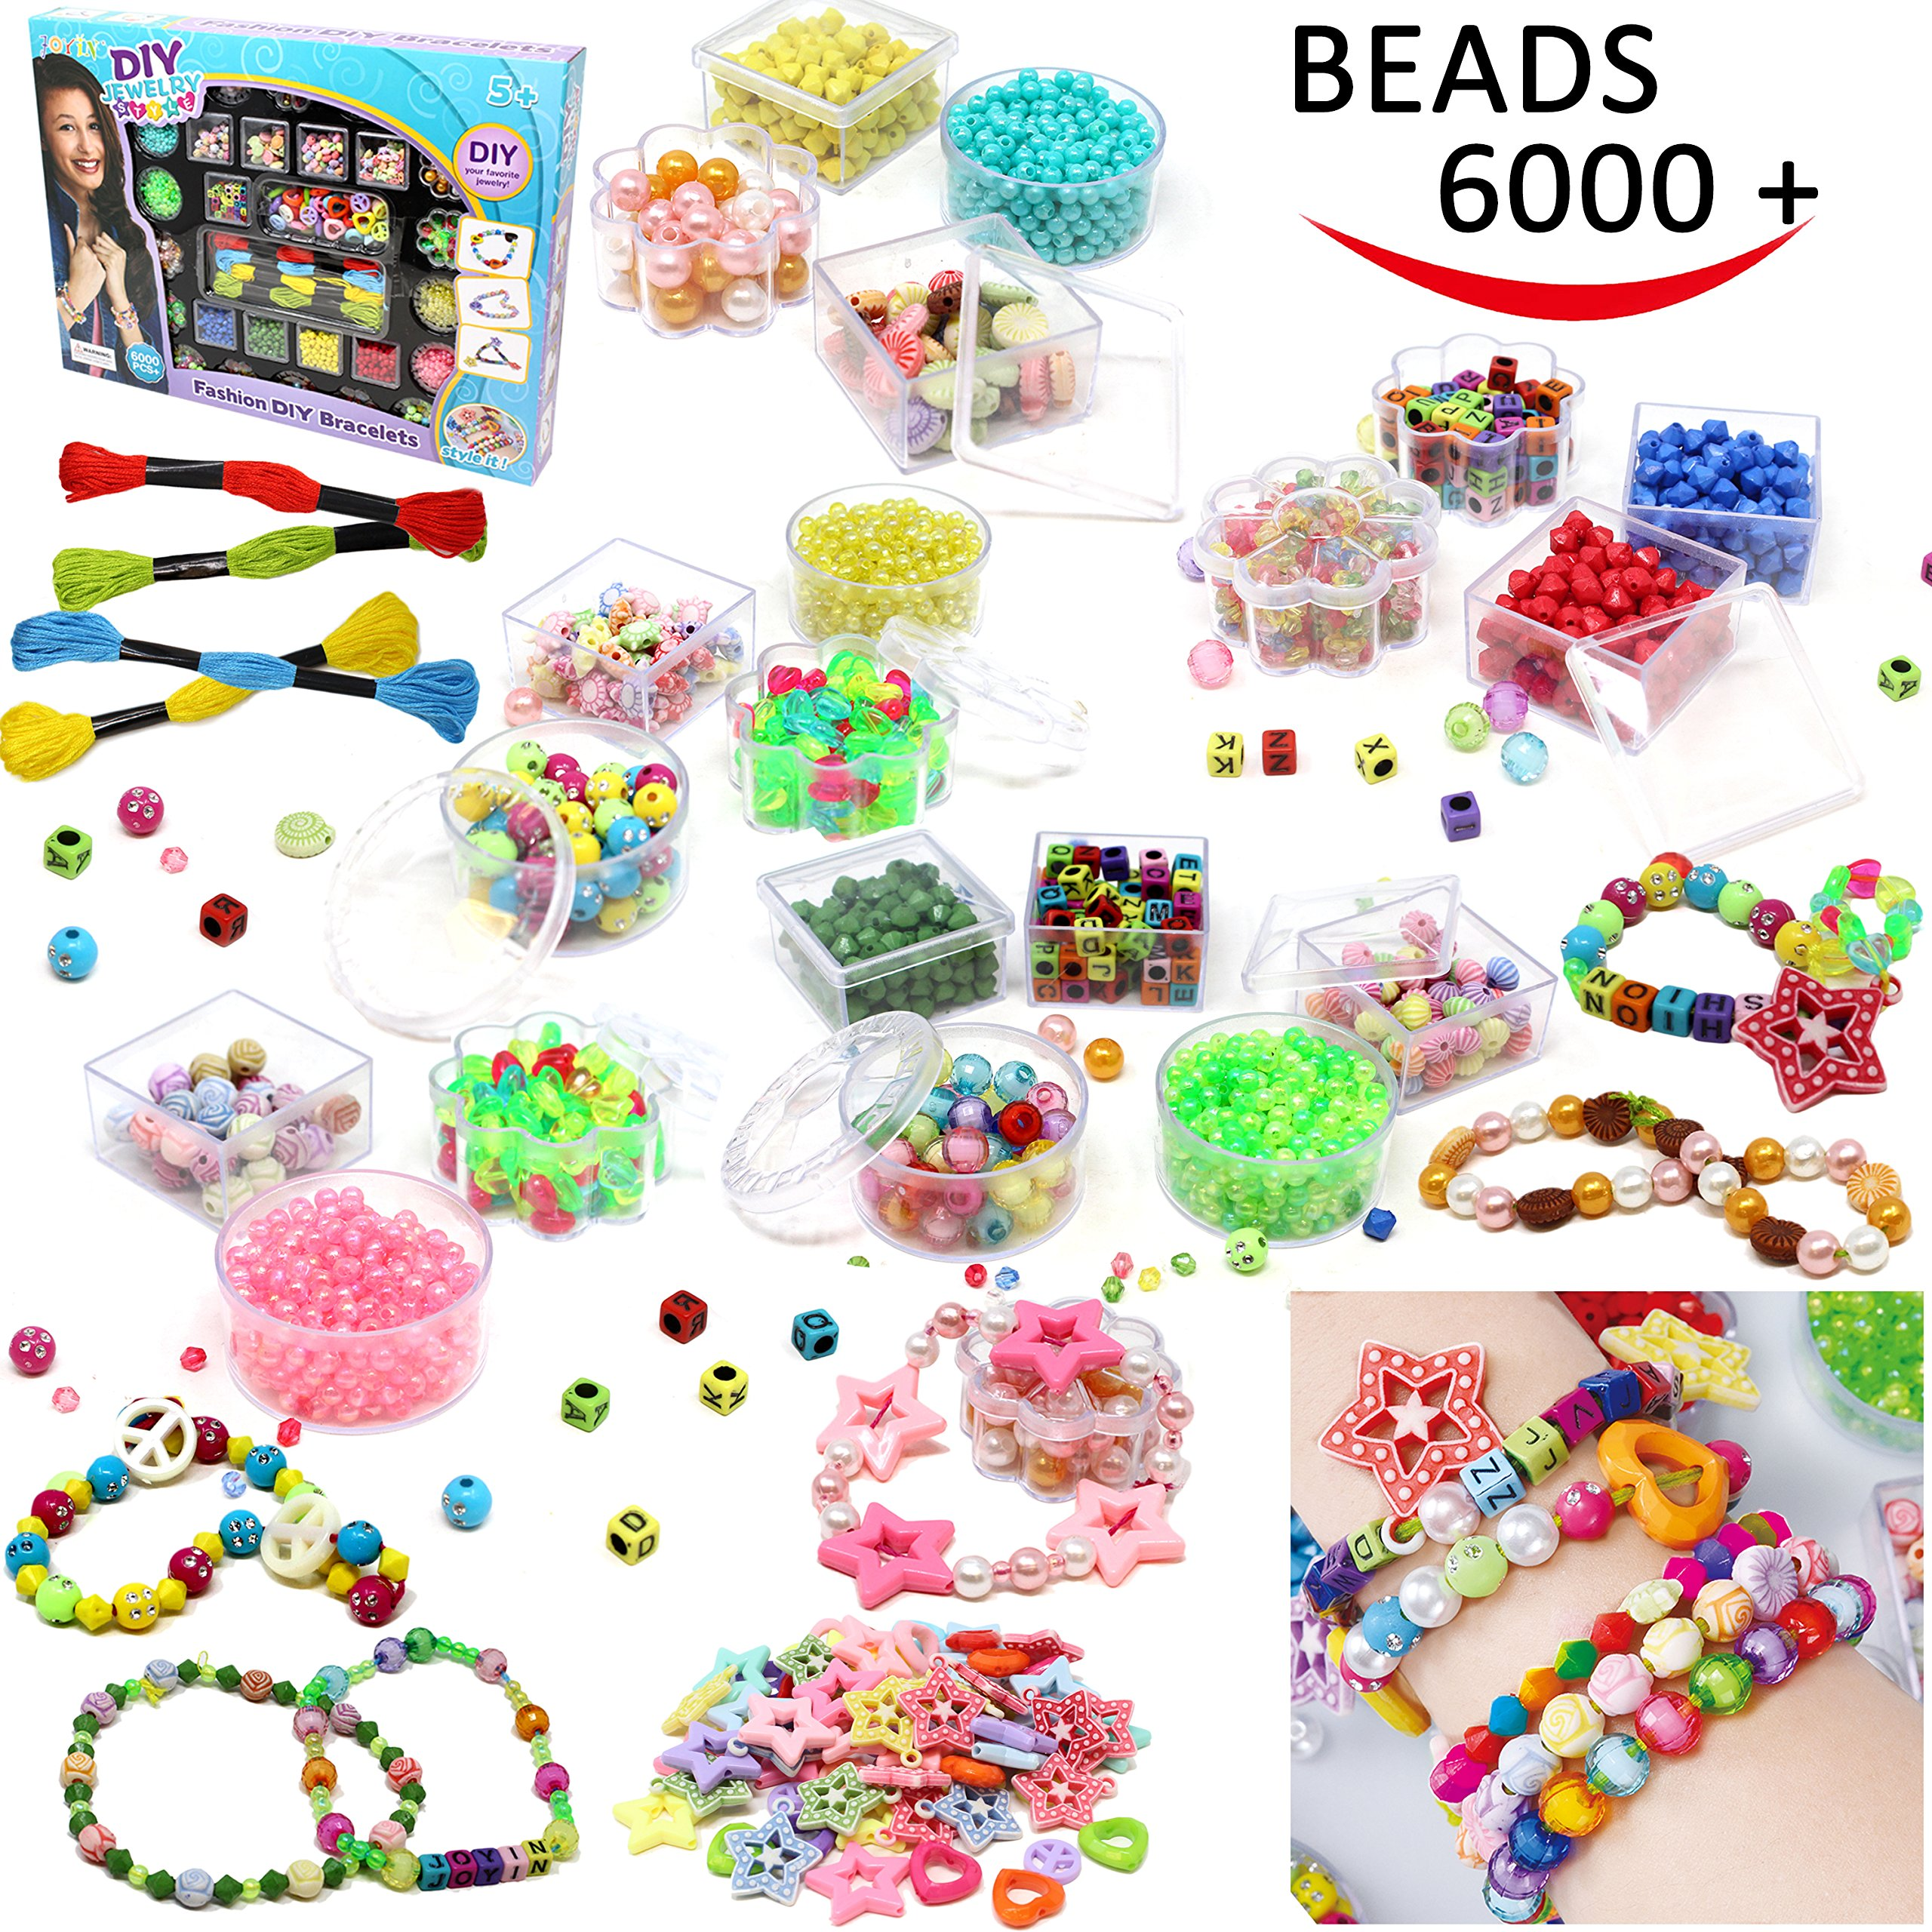 Beads Set 6000 Pieces DIY Beads Kit; 28 Different Types & 4 Color Strings for Jewelry Necklace Making, Friendship Bracelet Making and Valentines Day Children Arts & Crafts Beads by Joyin Toy